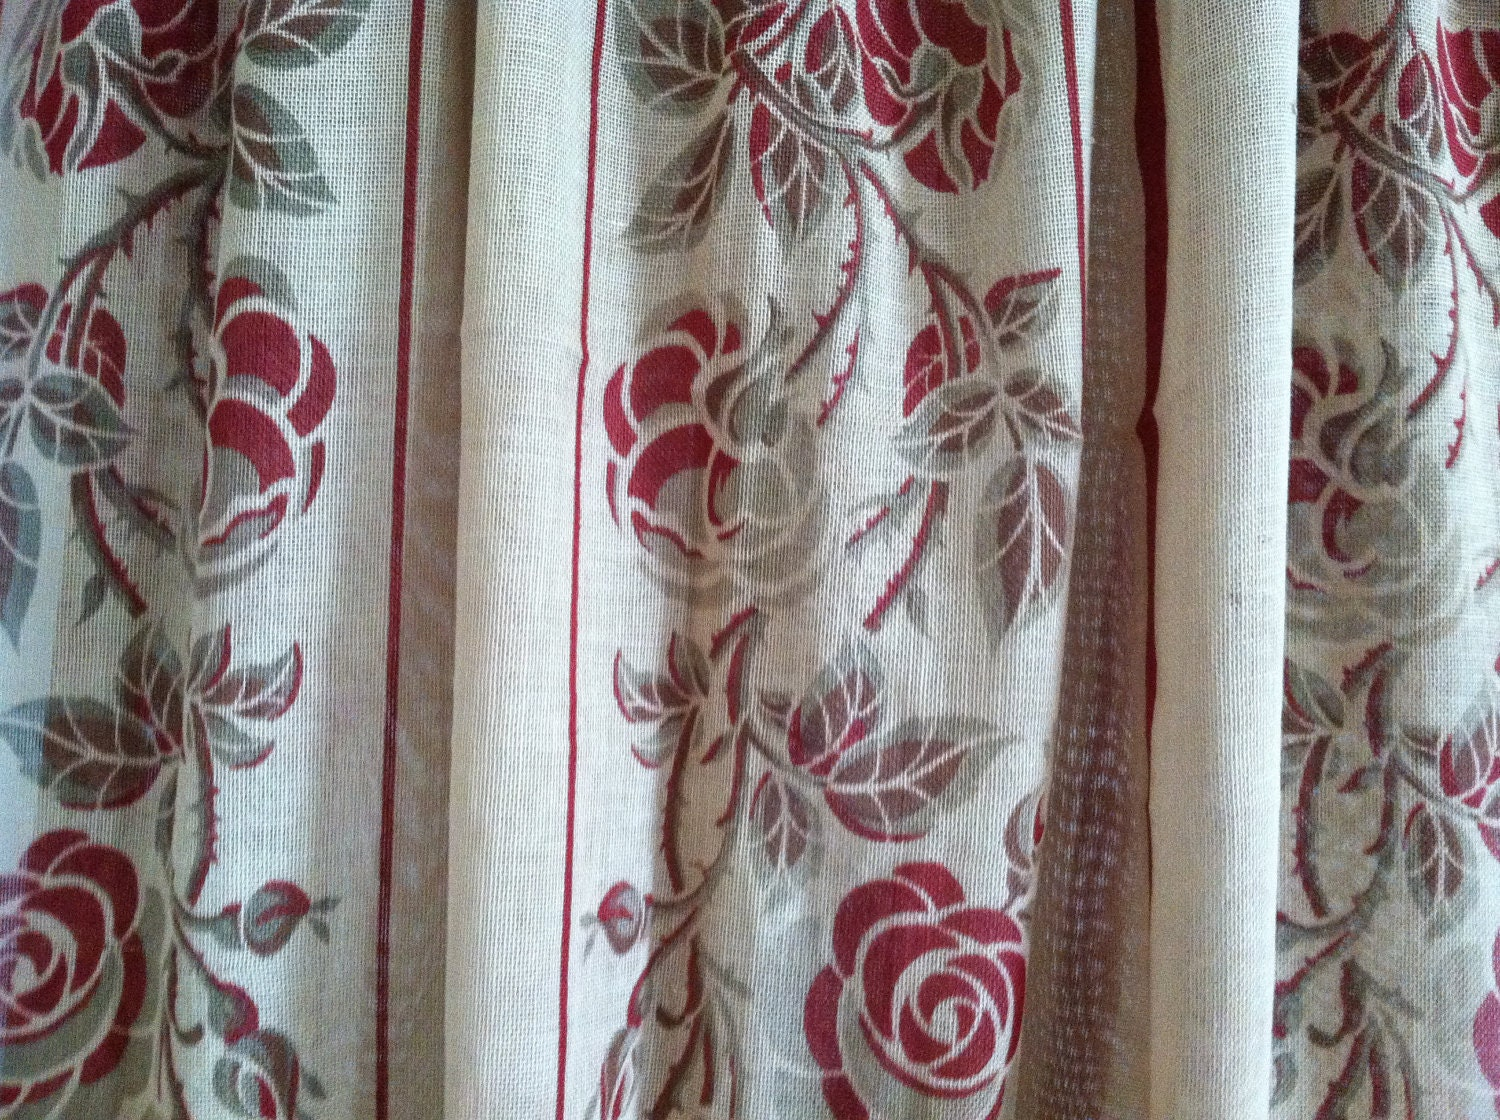 Items Similar To Arts And Crafts Movement Curtain Panel Charles Rennie Mackintosh Style Roses